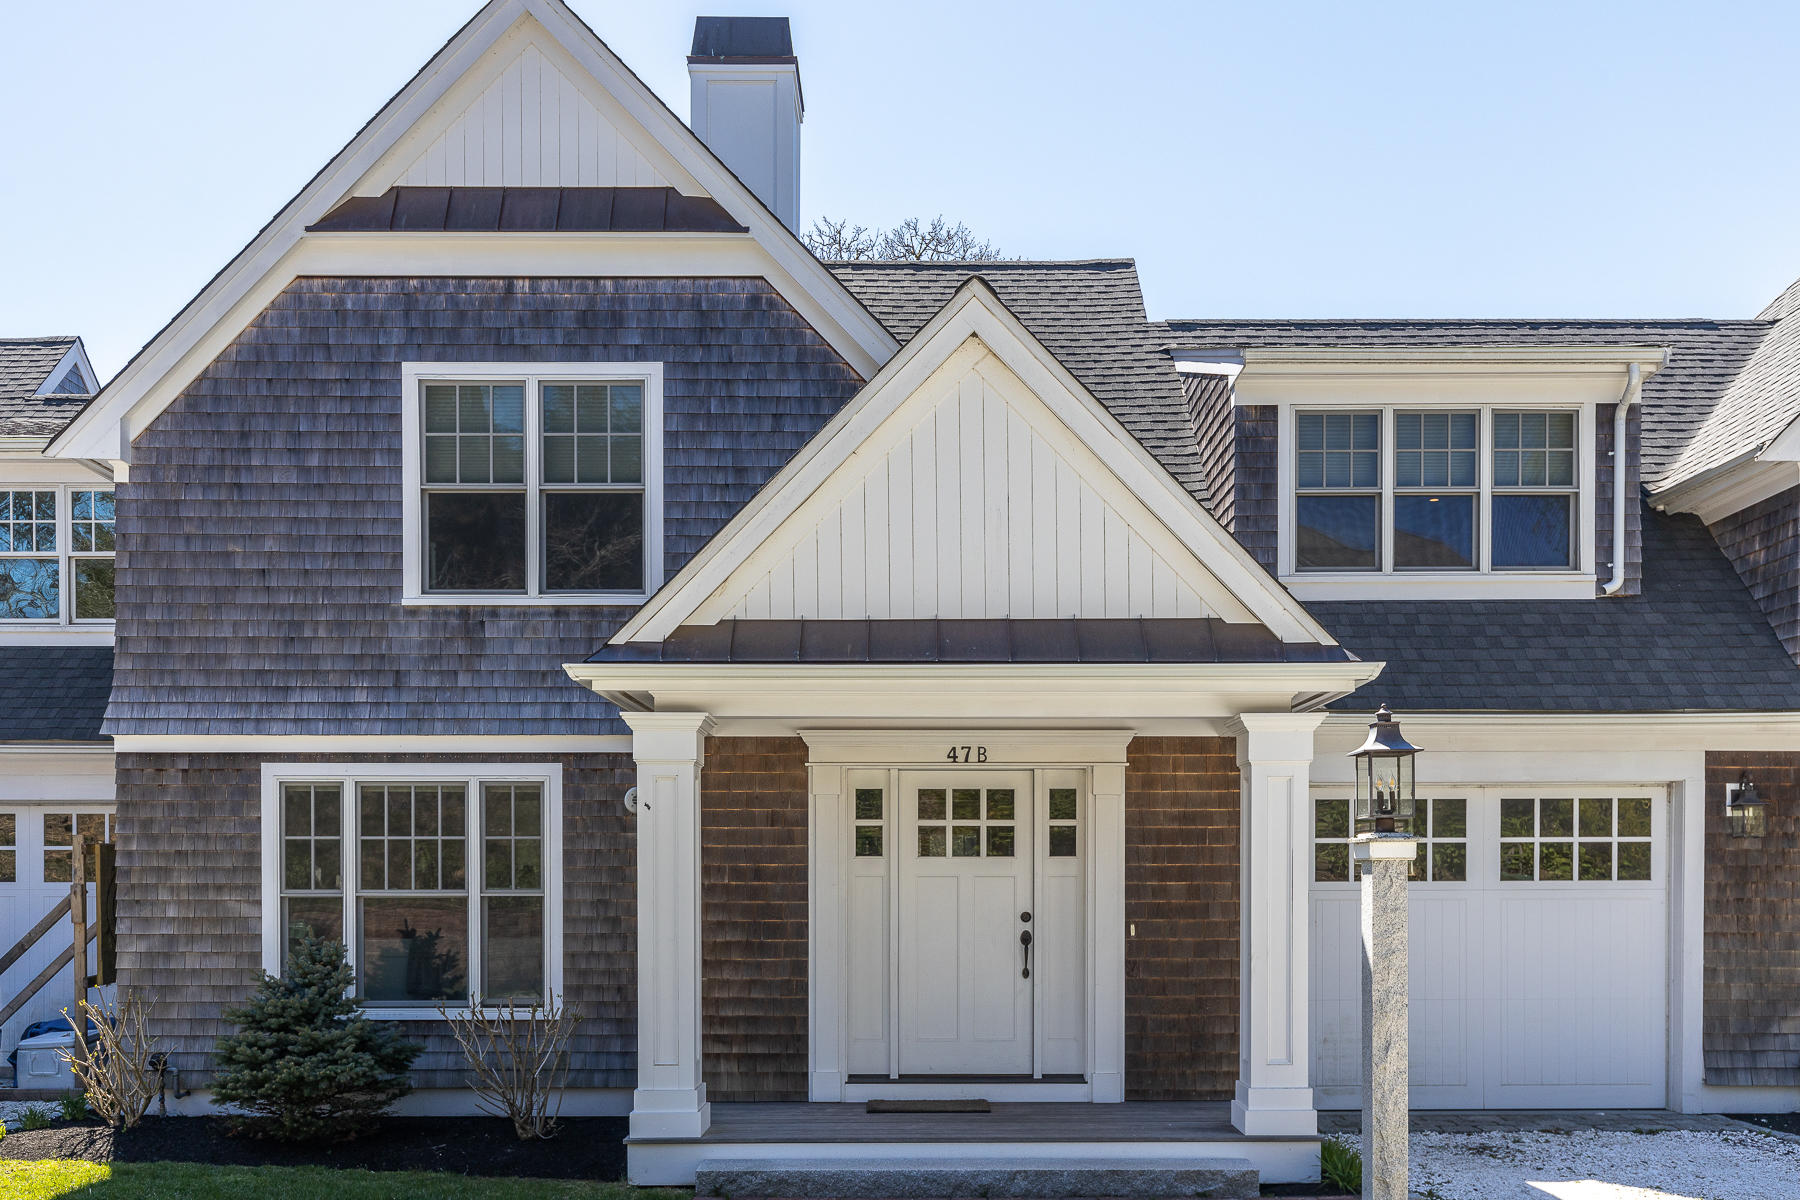 47 Misty Meadow Lane, North Chatham MA, 02650 details